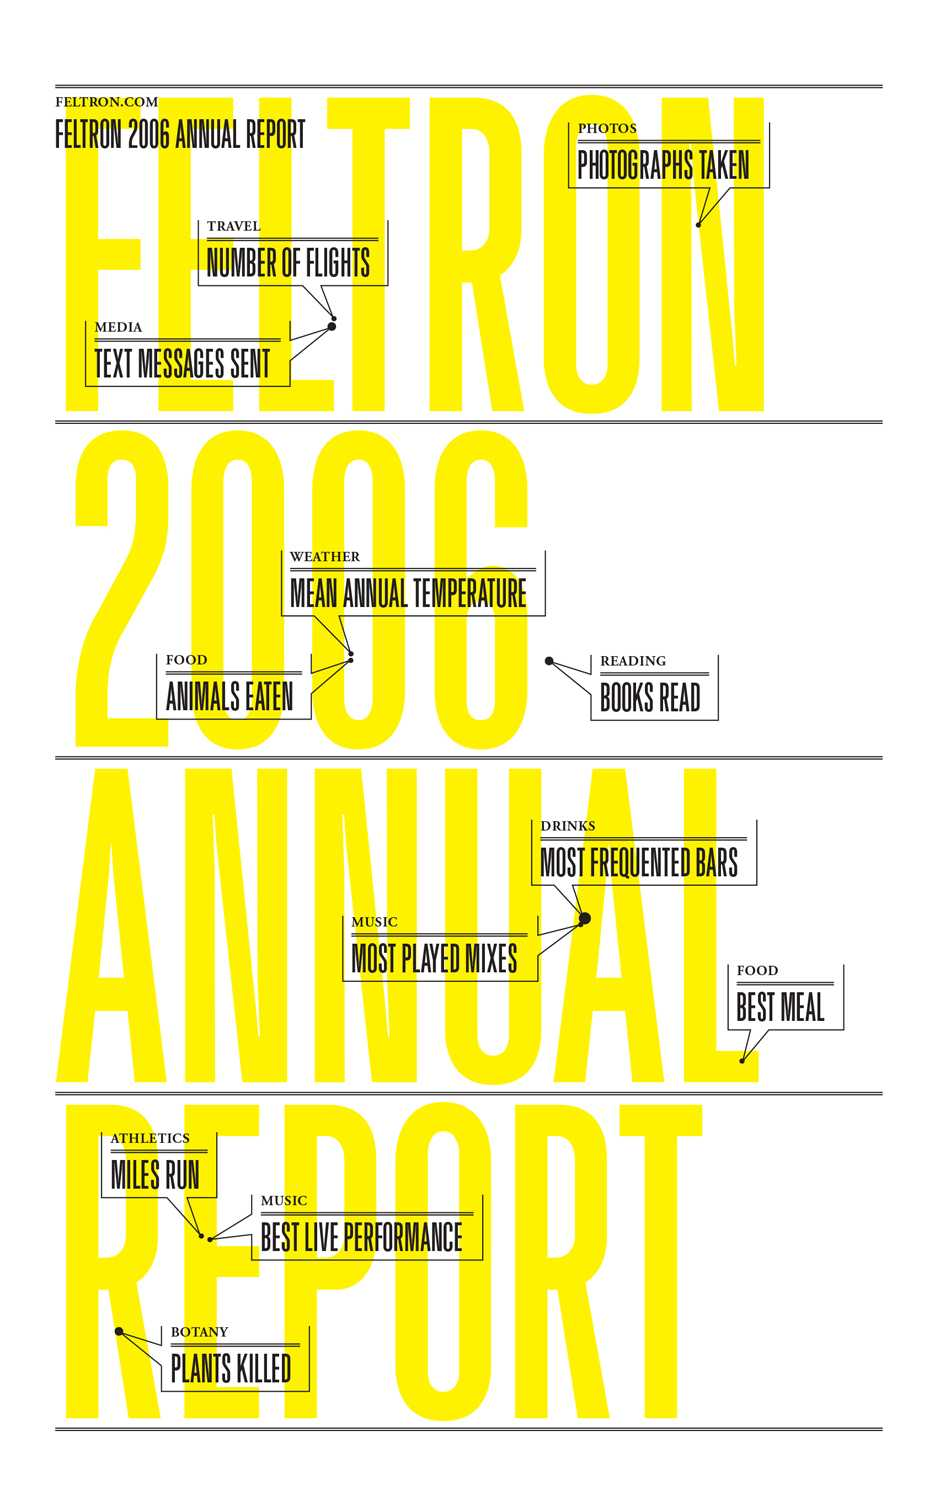 Feltron Annual Report - Cartographical Experiments  - 0333 34